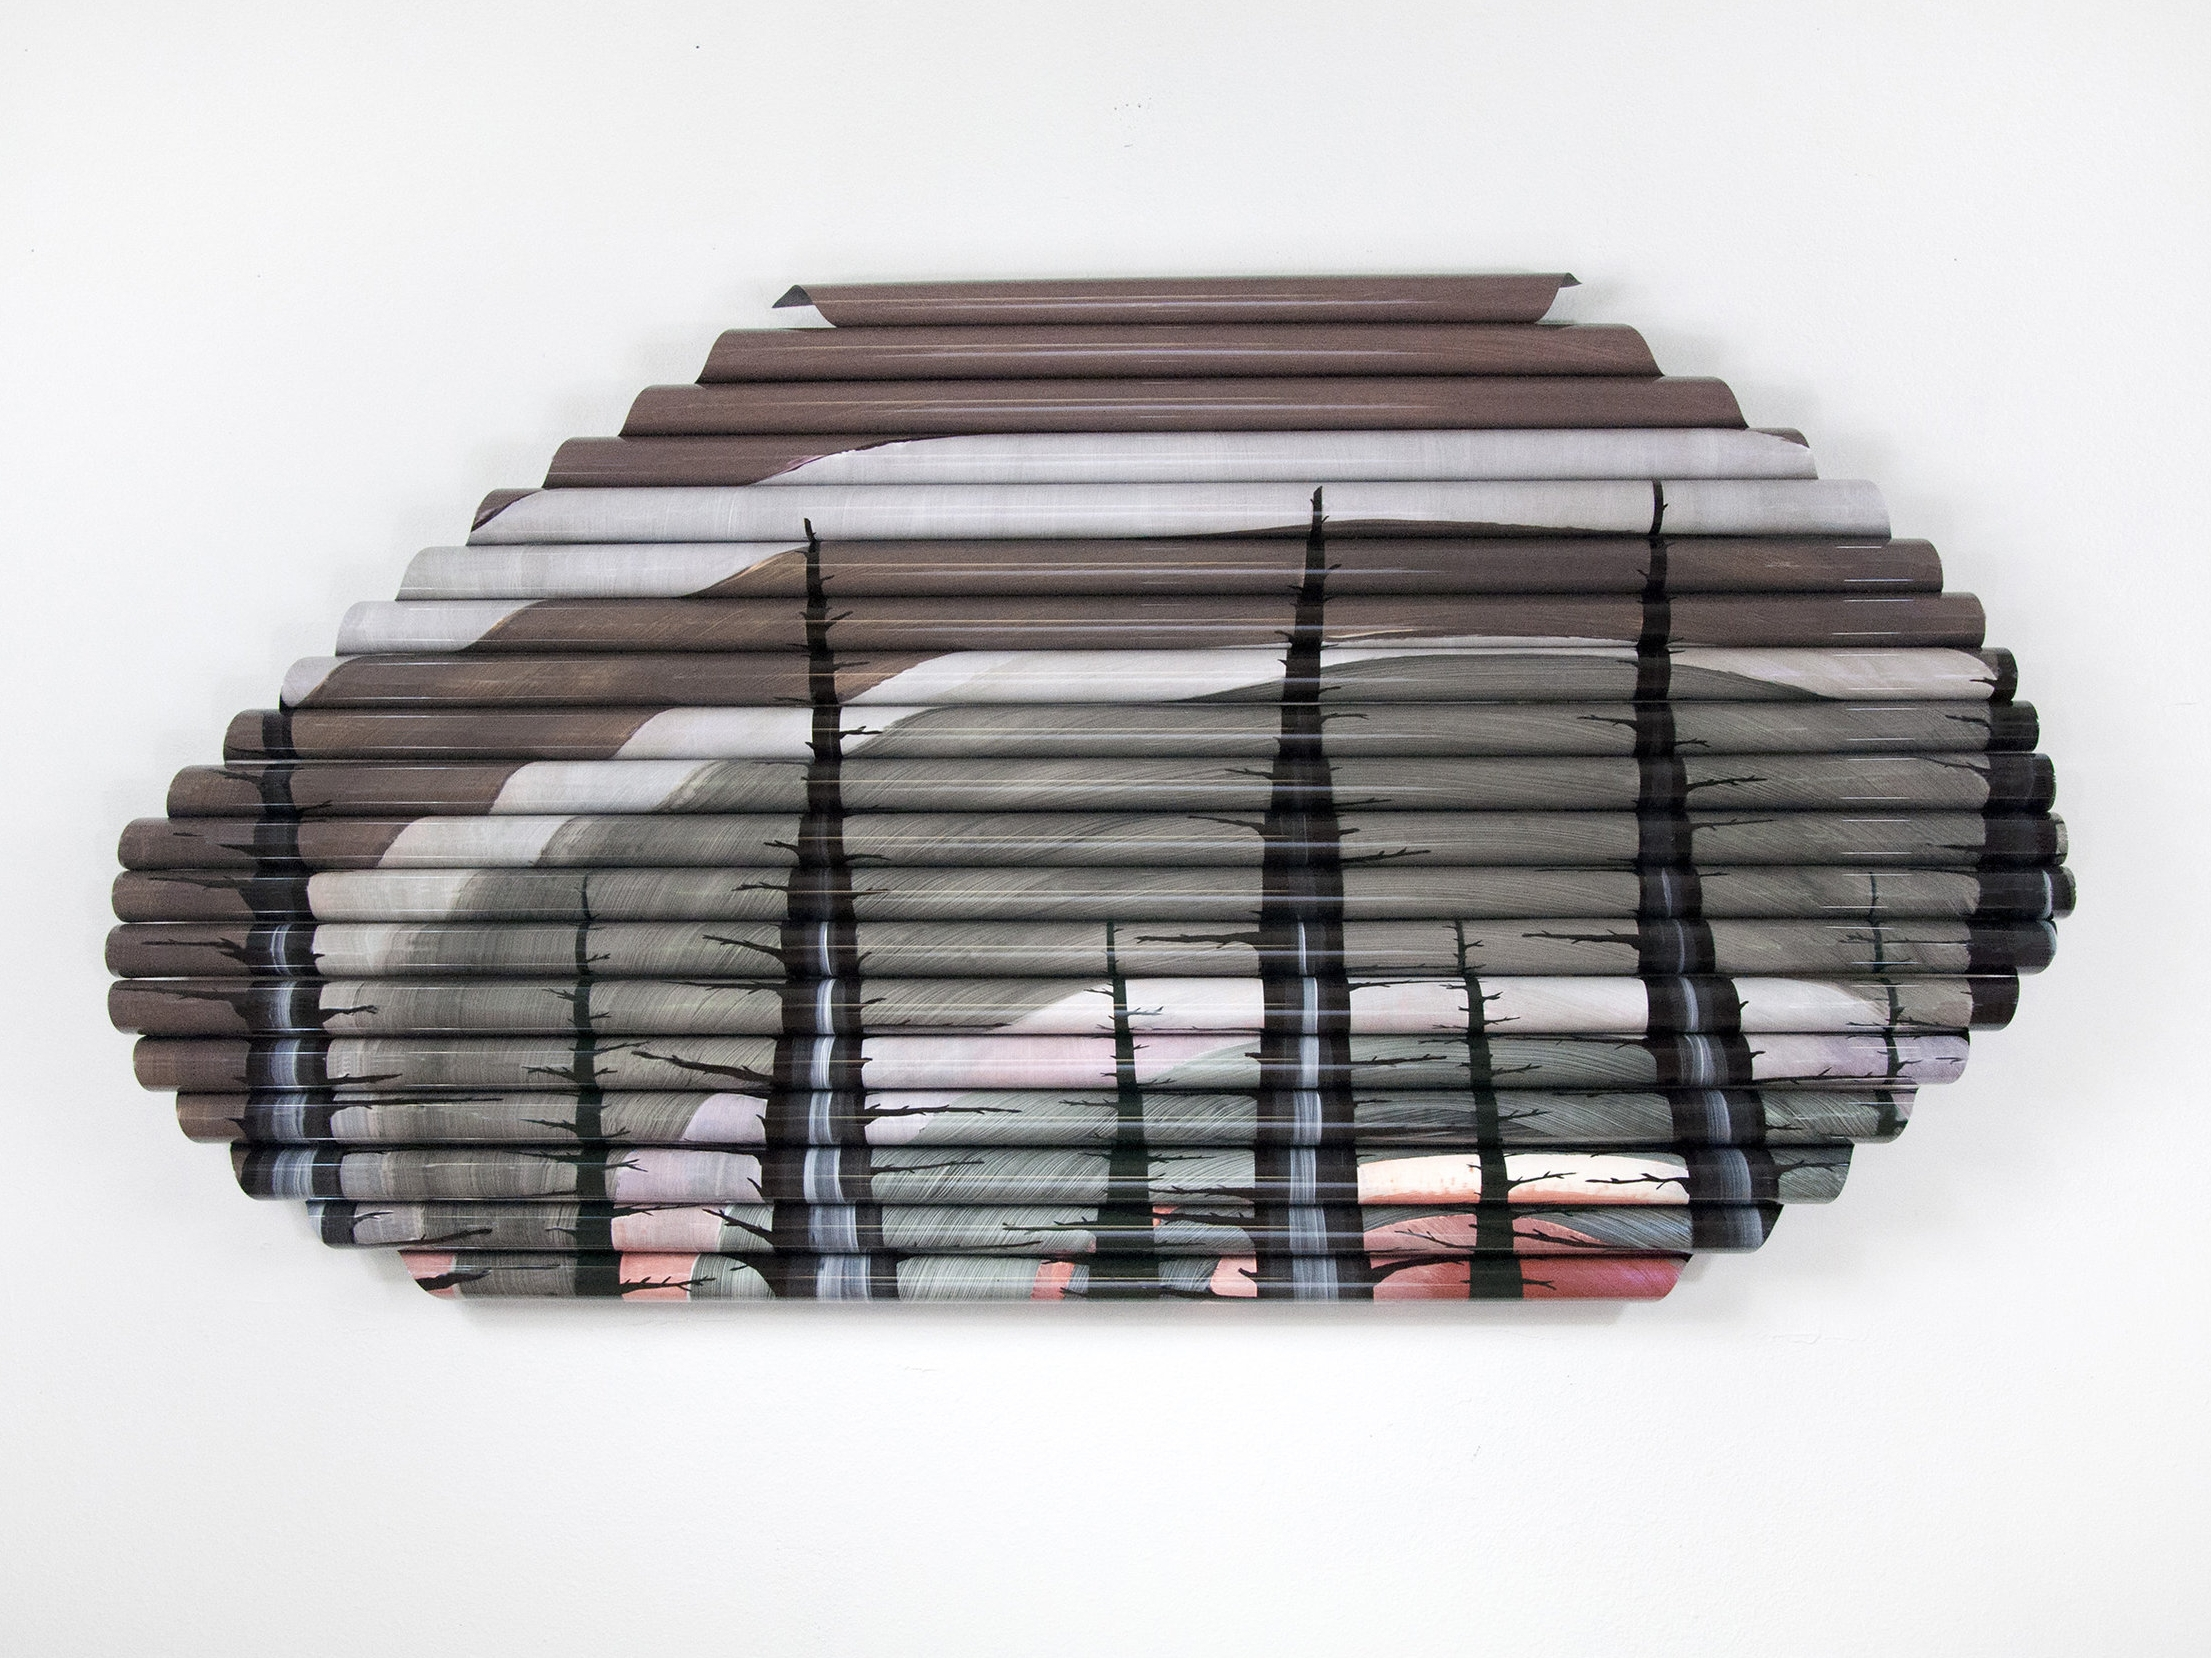 Near Next (for Roger) , acetate, acrylic paint, matte medium, wood, 31 x 58 x 4.25 inches,2016